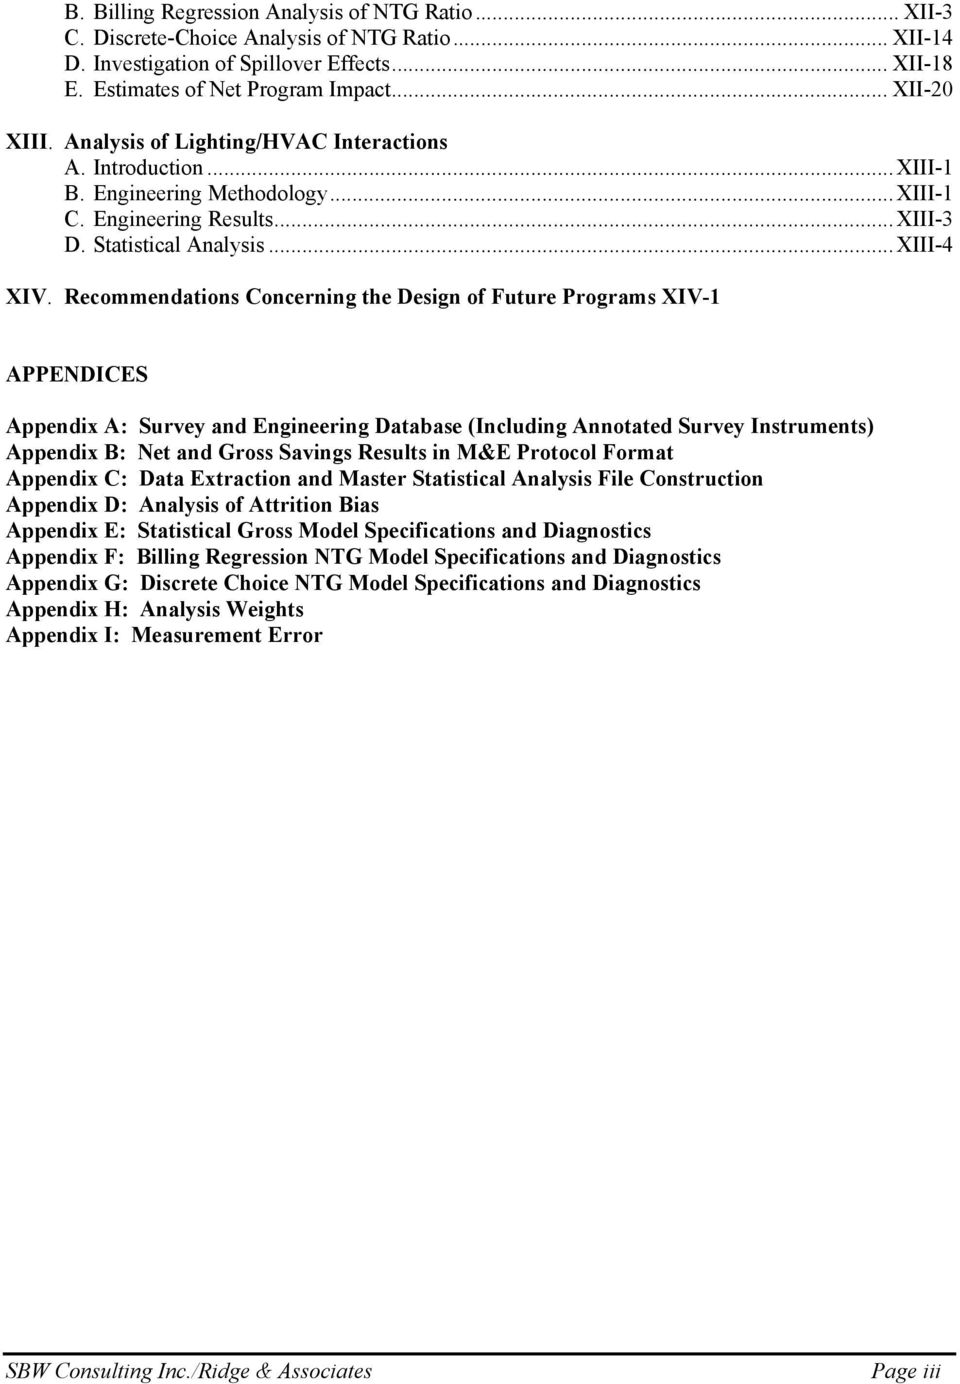 Recommendations Concerning the Design of Future Programs XIV-1 APPENDICES Appendix A: Survey and Engineering Database (Including Annotated Survey Instruments) Appendix B: Net and Gross Savings